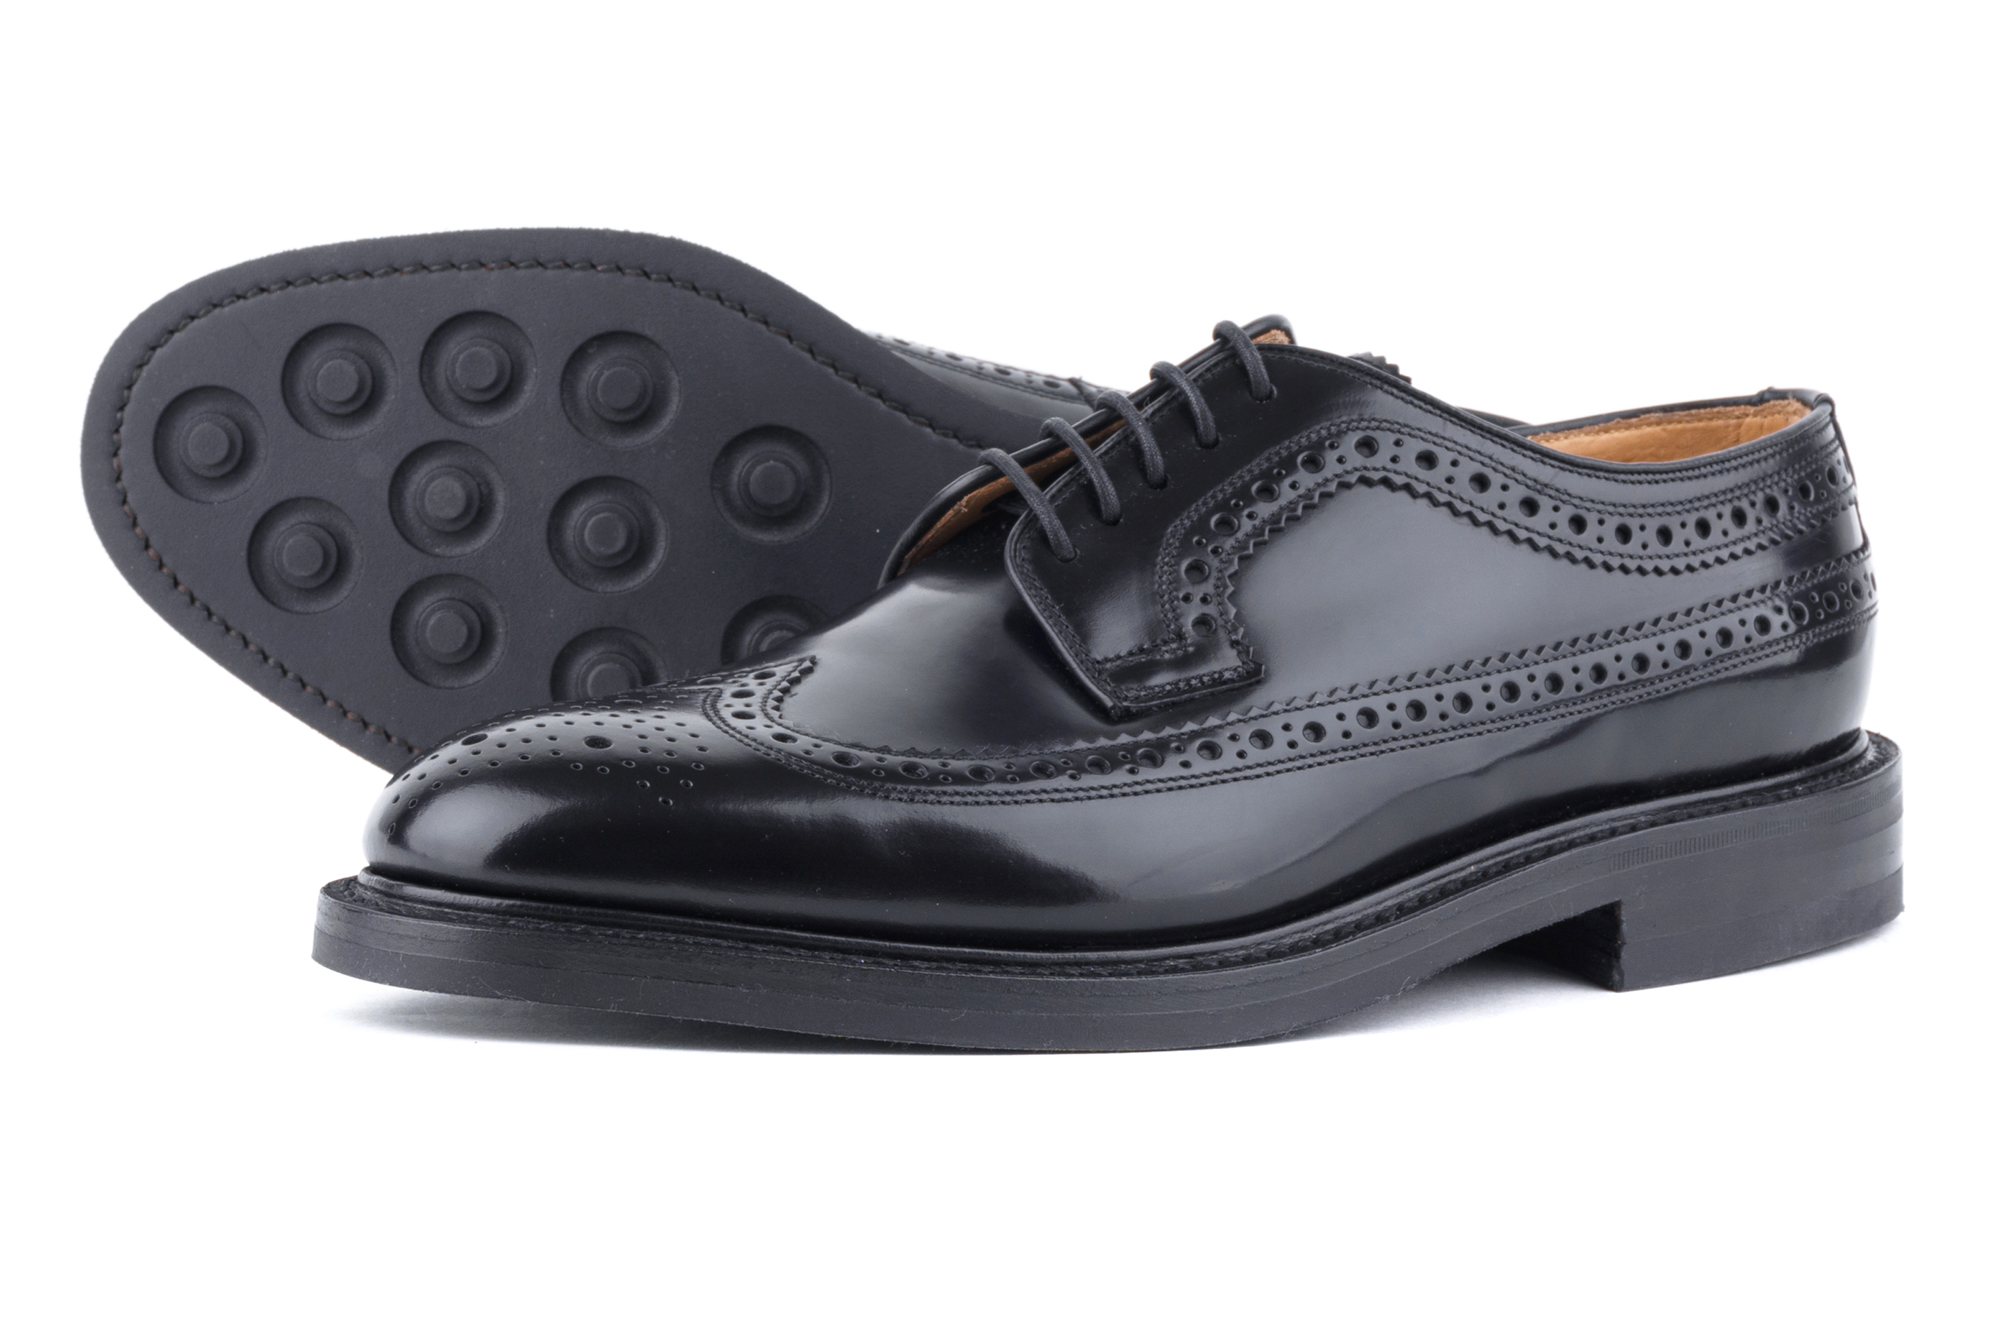 фото Дерби-броги Loake, Sovereign Black от магазина MENSHOES